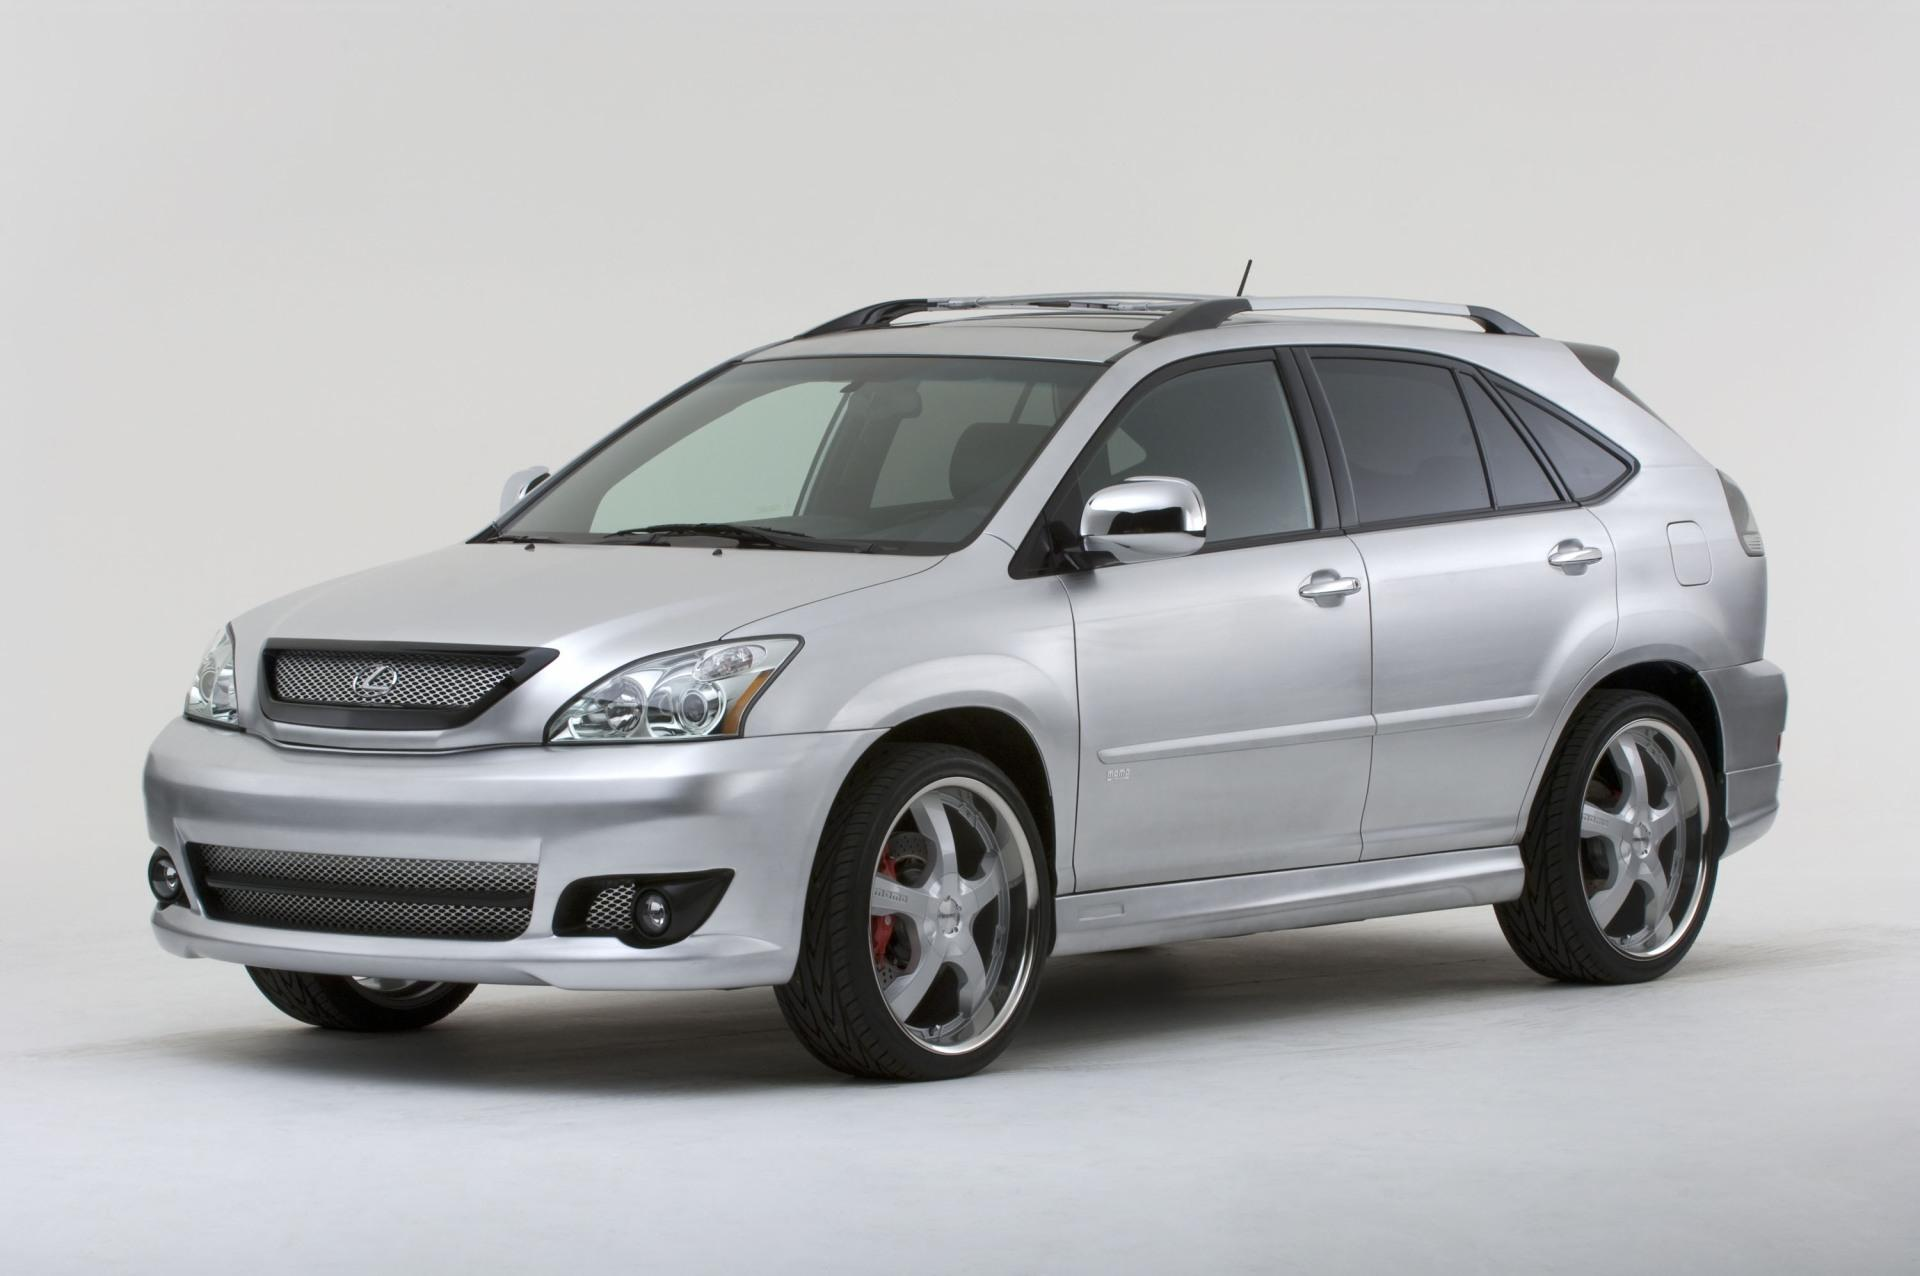 2009 lexus rx 400h technical specifications and data engine dimensions and mechanical details. Black Bedroom Furniture Sets. Home Design Ideas